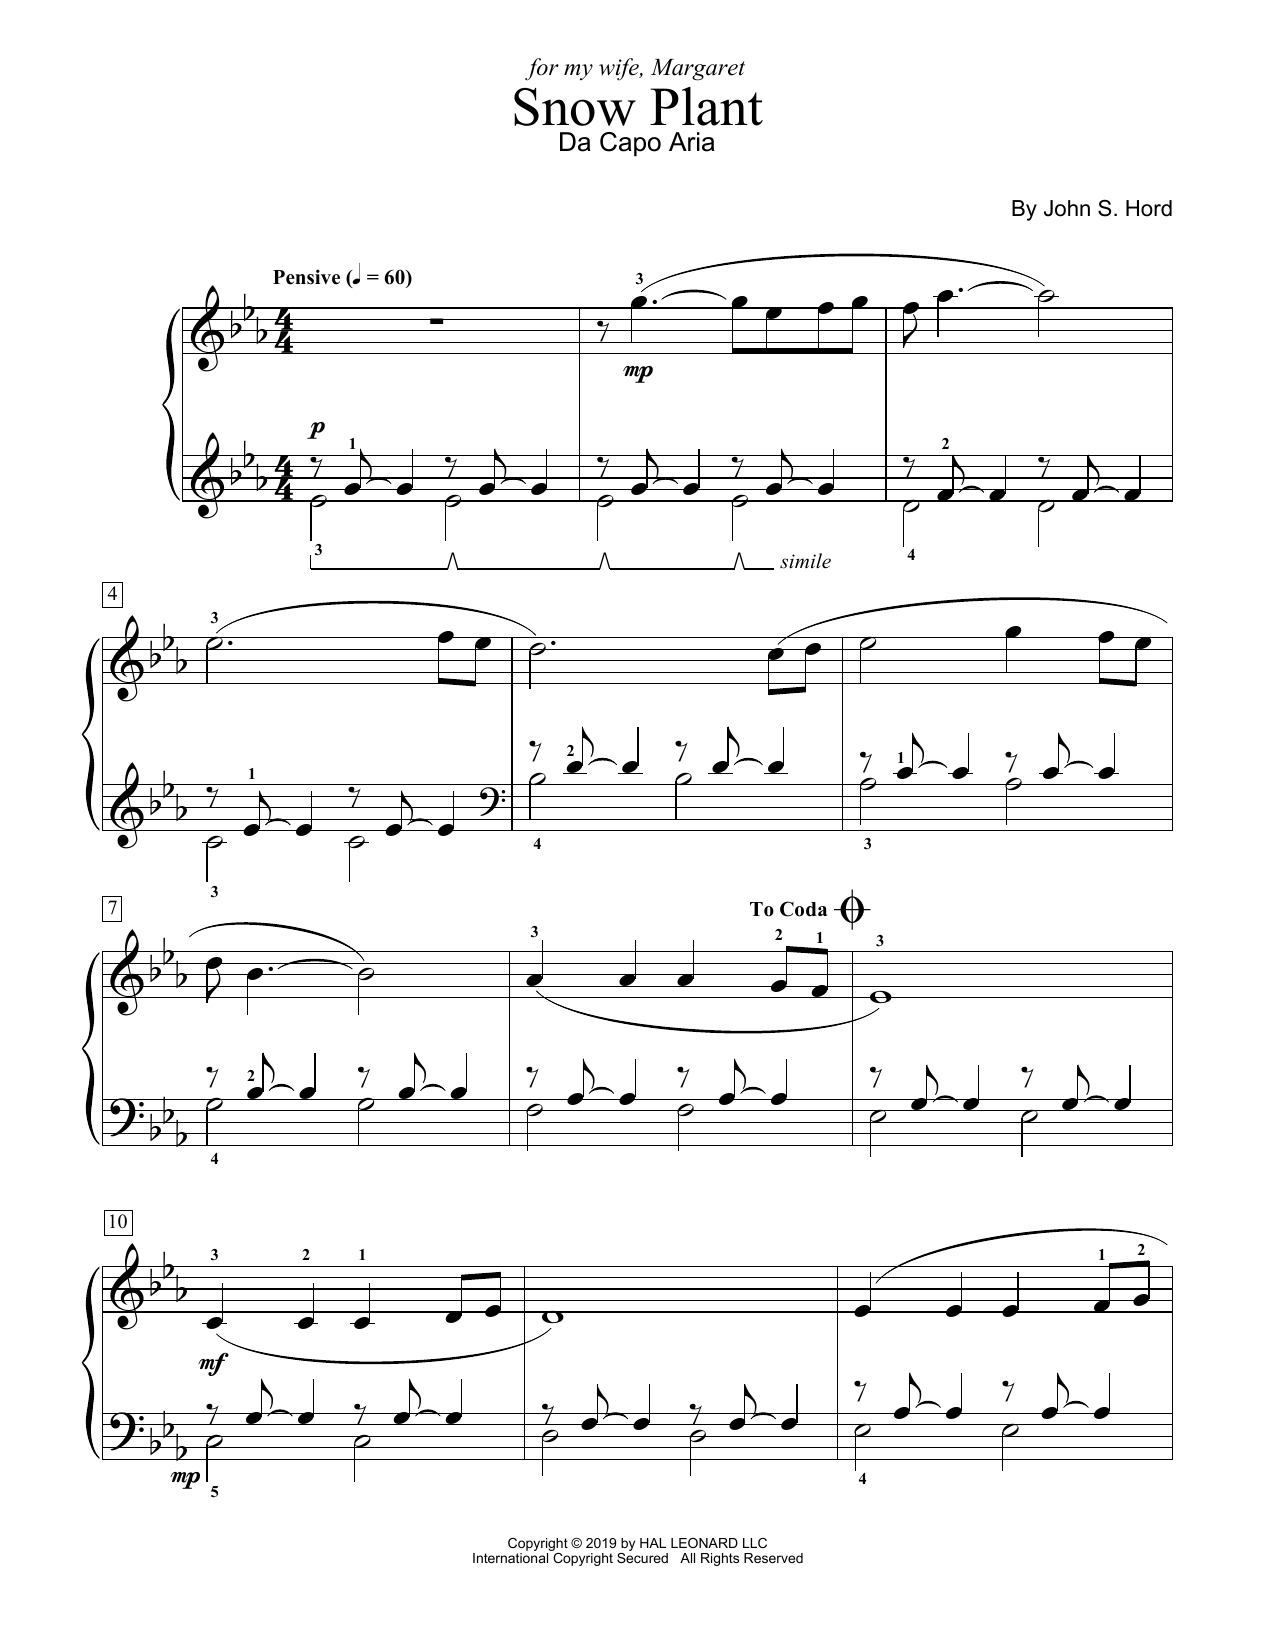 John S. Hord Snow Plant sheet music notes and chords. Download Printable PDF.